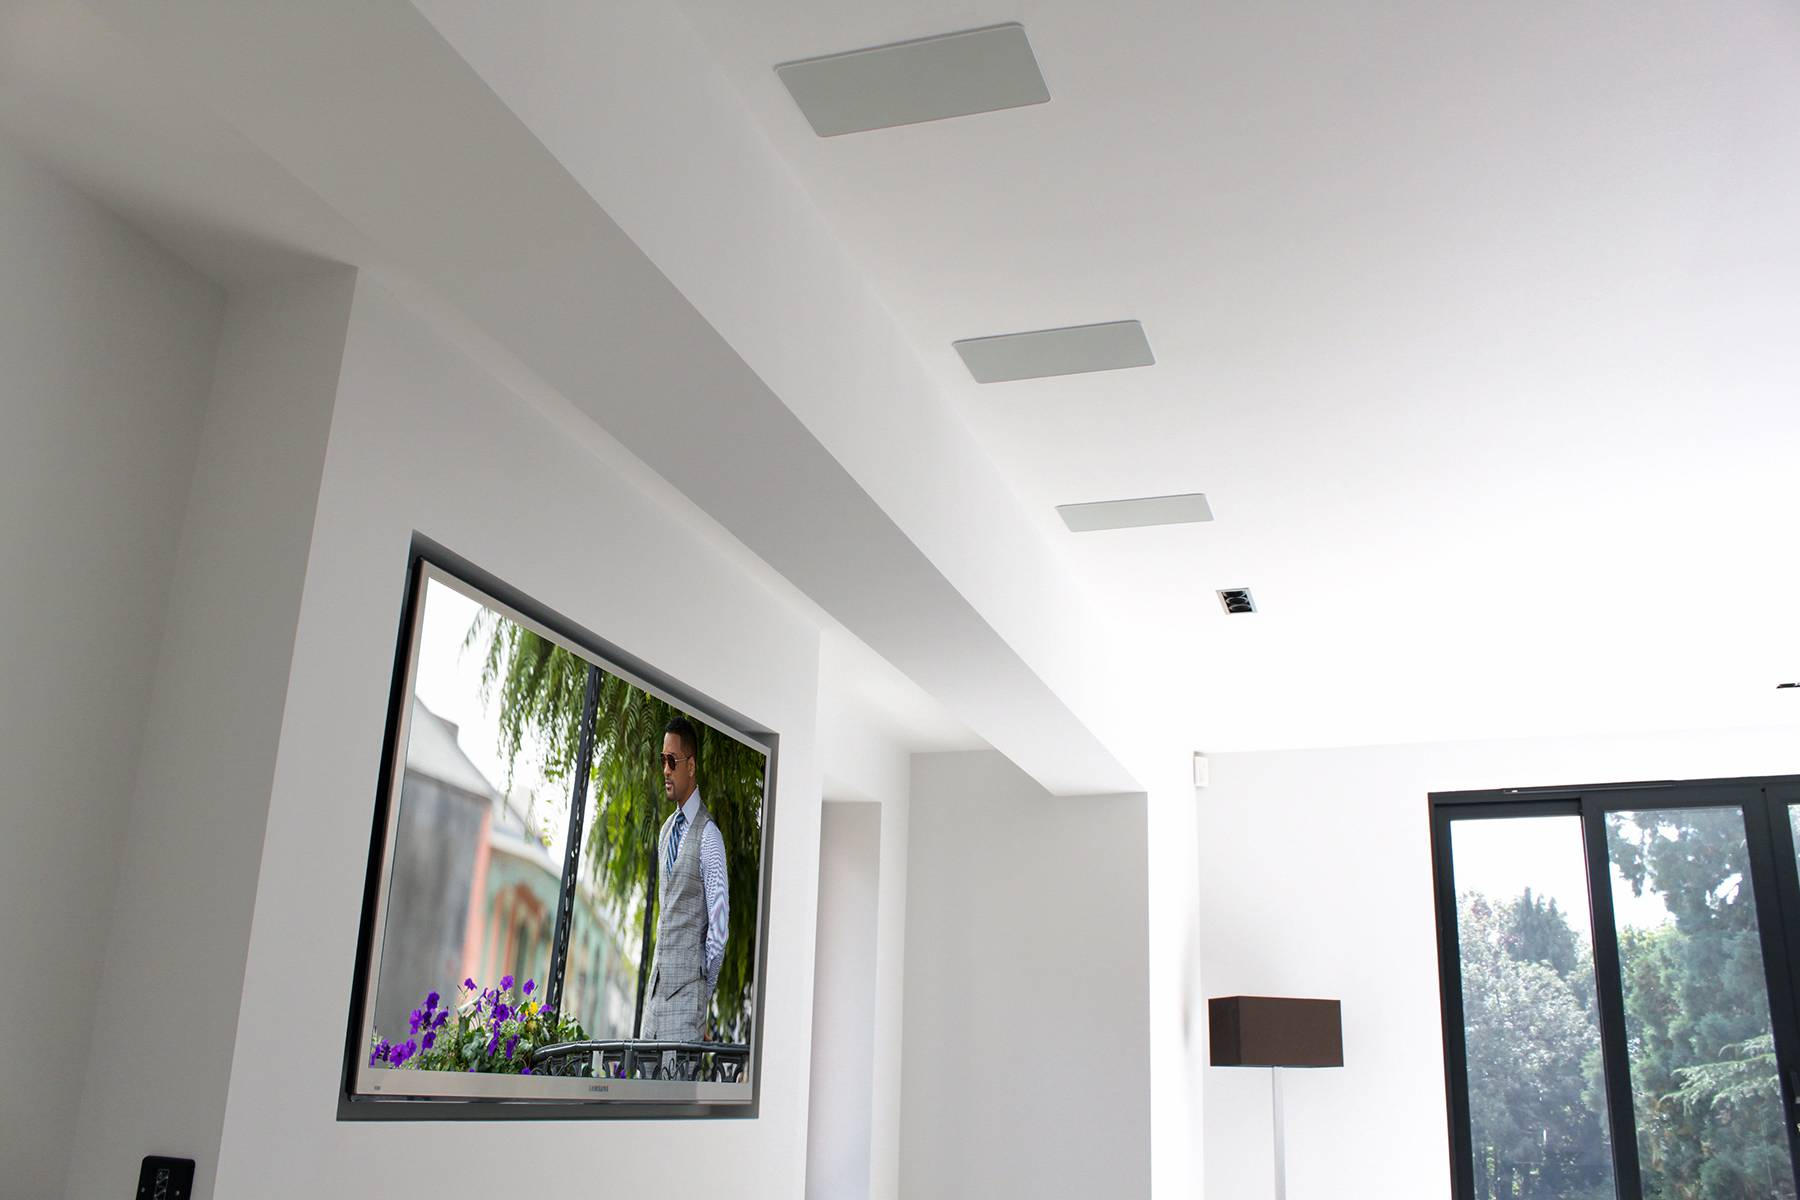 Field Cresent Living Room In-Ceiling LCRs